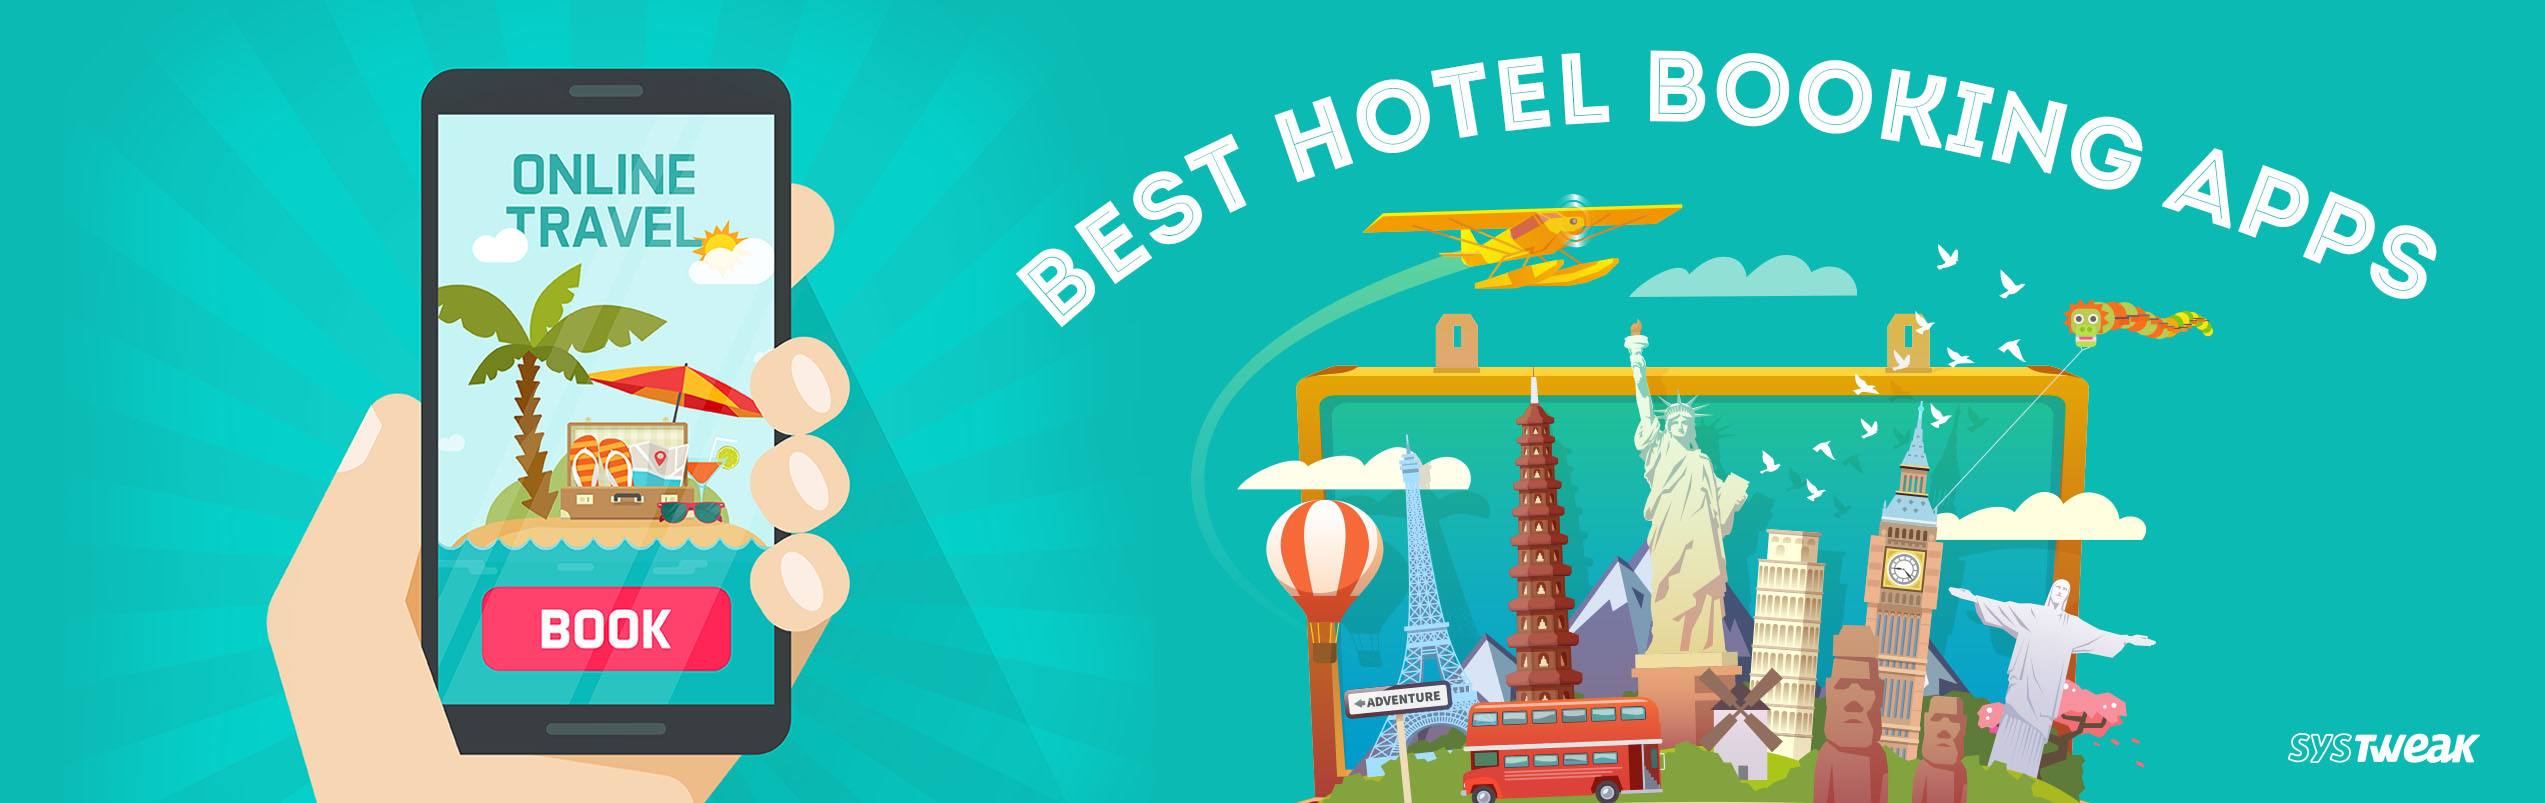 The 10 Last Minute Hotel Booking Apps In 2018